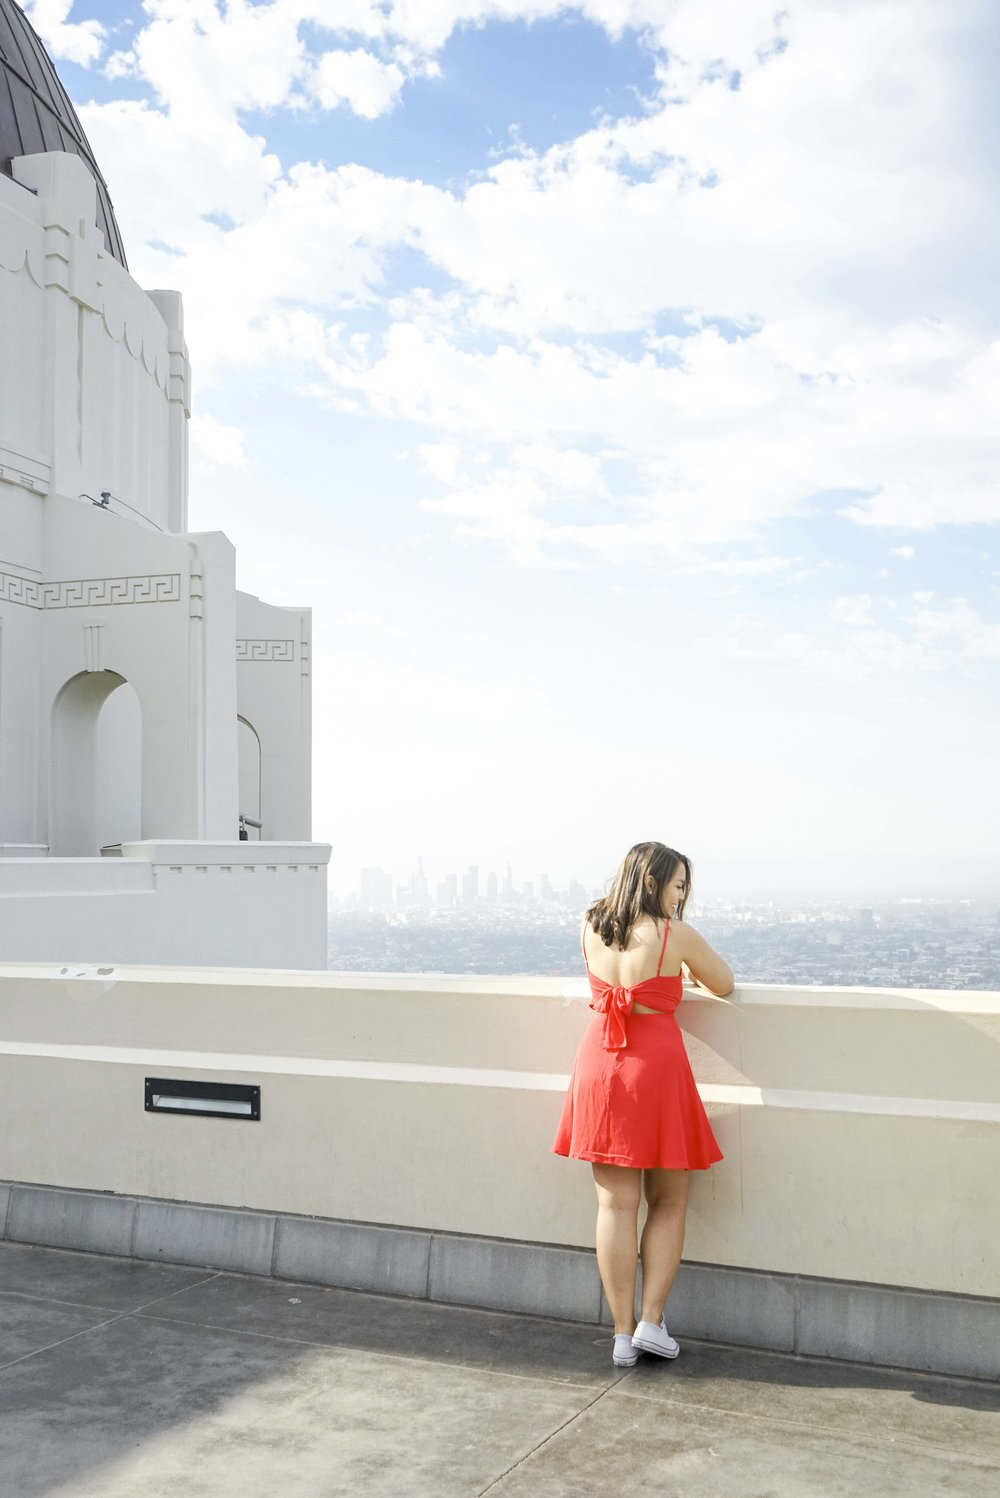 6 Iconic Los Angeles Spots You Can't Miss | California